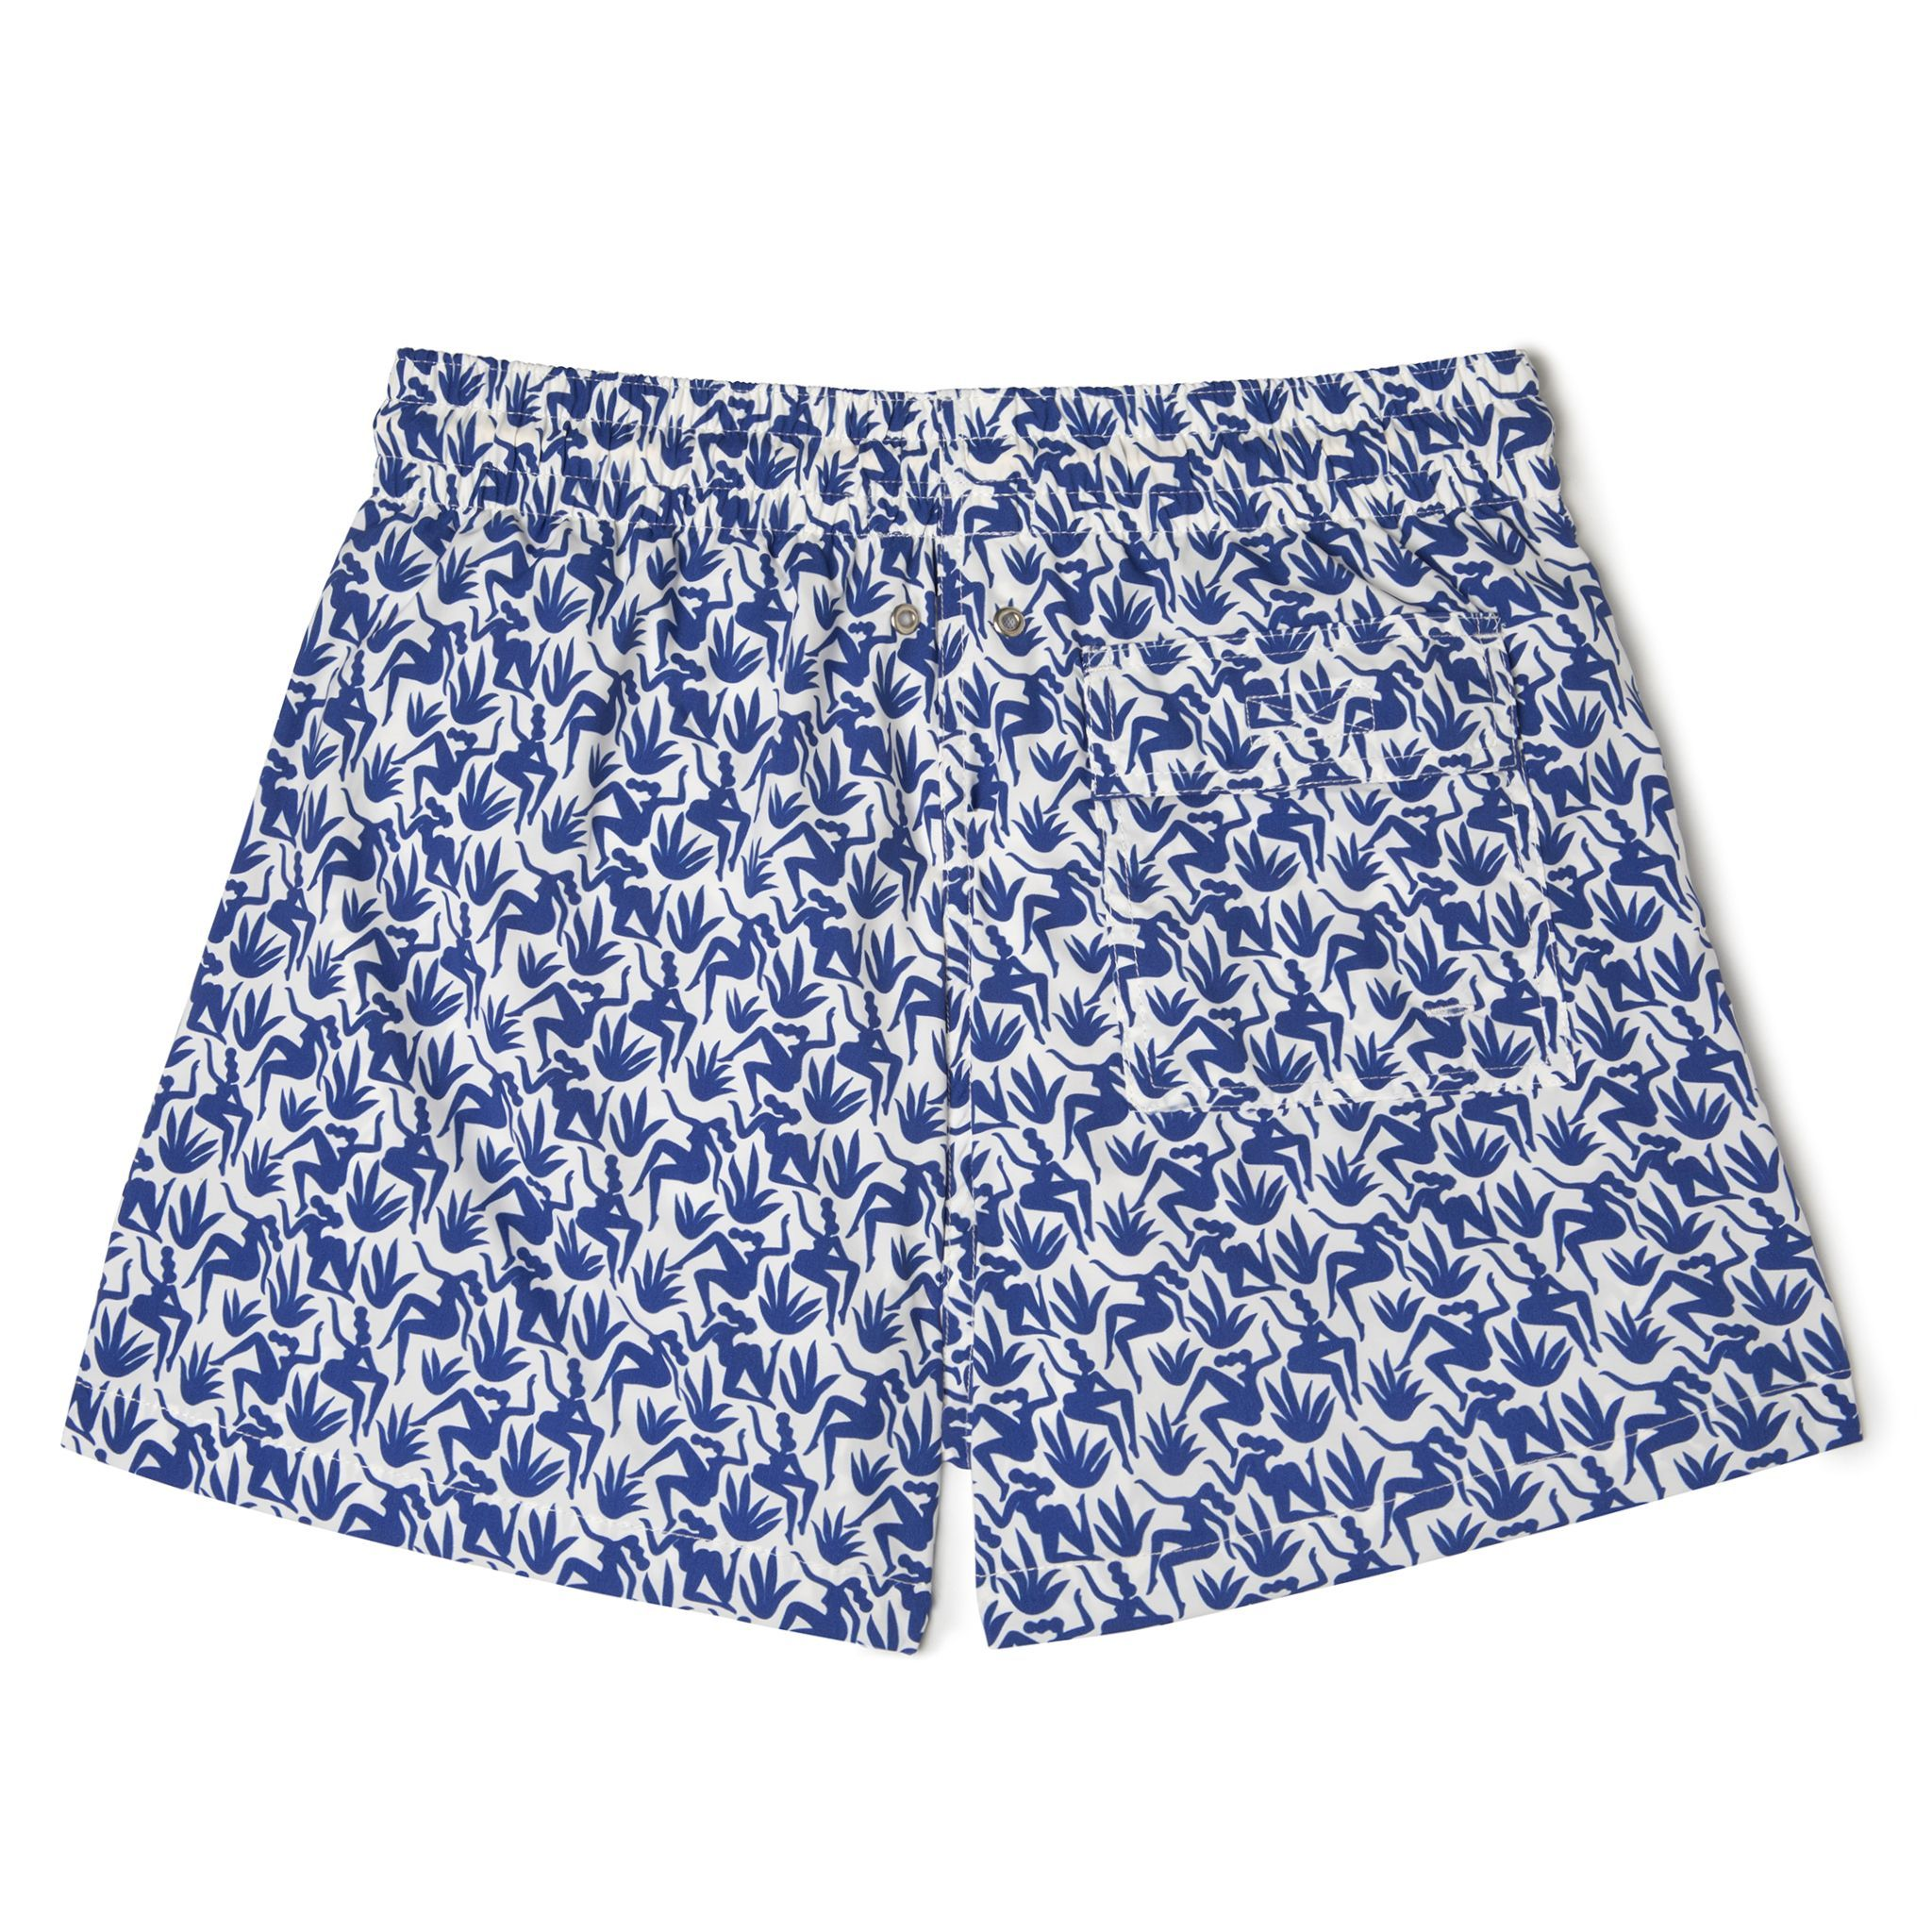 Short-Length Swim Shorts Blue Nereids